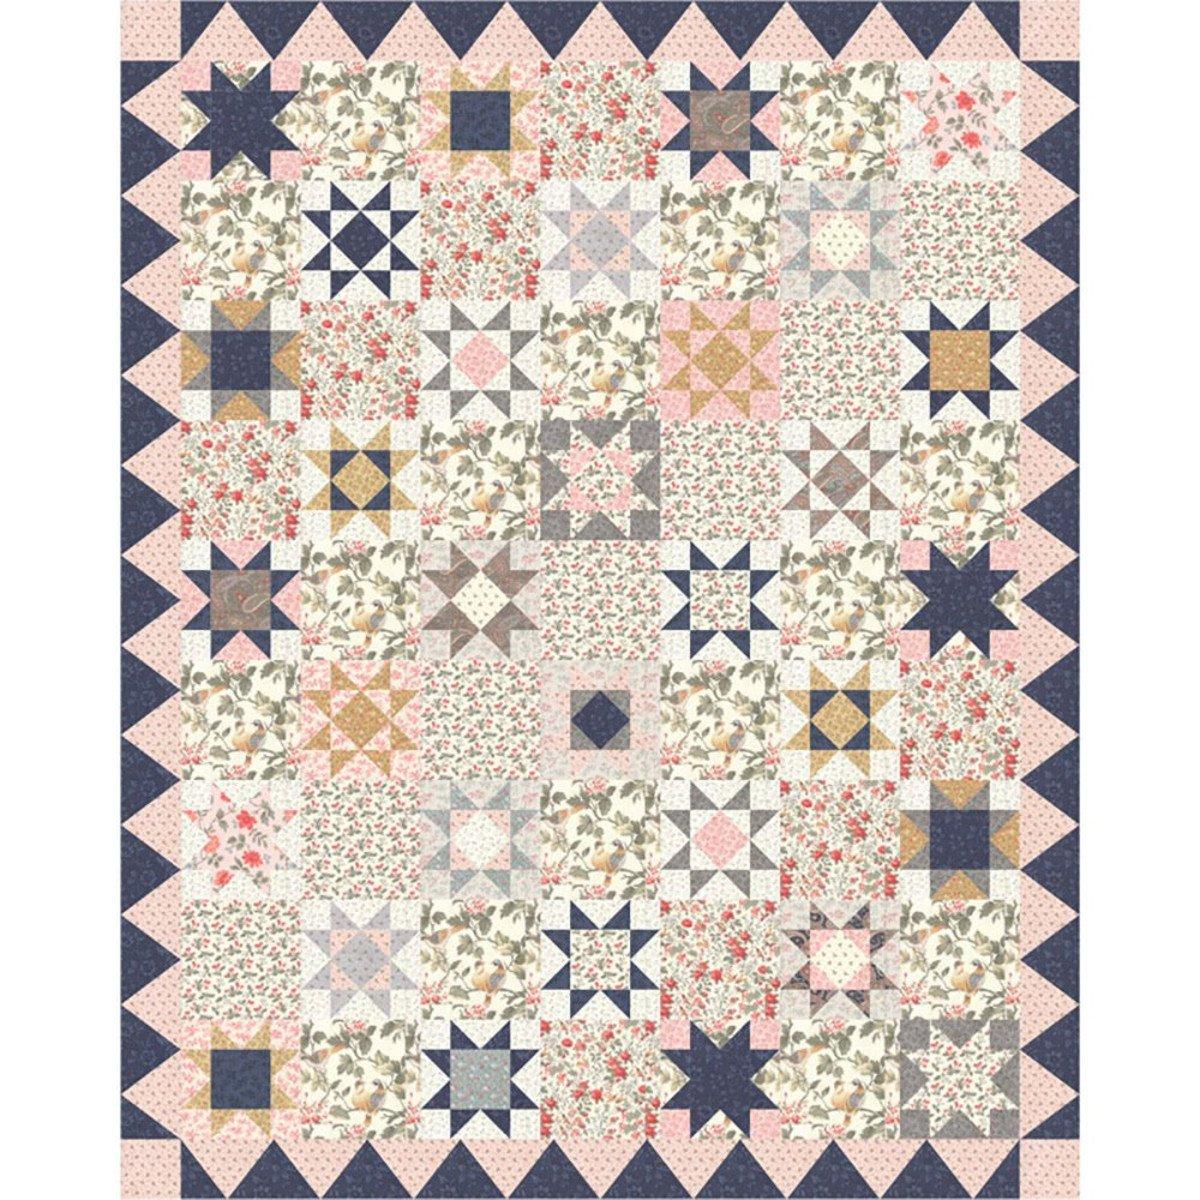 Daybreak fabric quilt kit by 3 Sisters for Moda Fabrics KIT44240